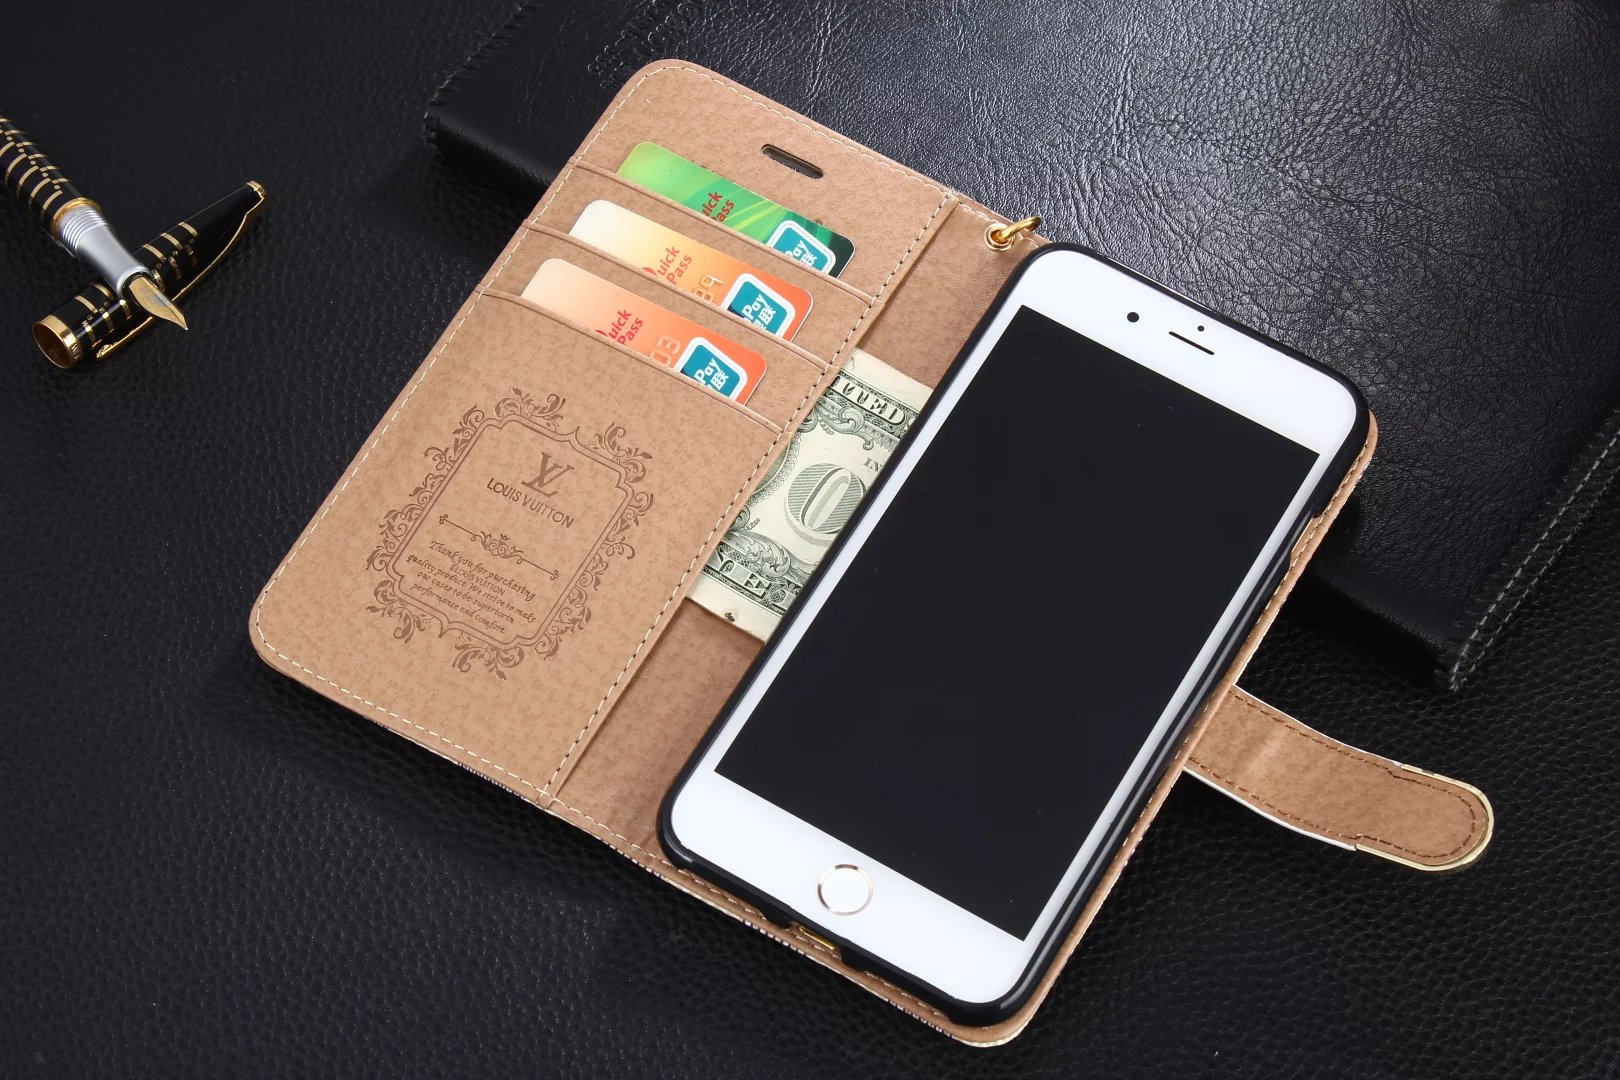 designer phone cases iphone 6 Plus personalized phone cases iphone 6 Plus fashion iphone6 plus case cell phone covers iphone case designer brands 6 phone covers leather case for iphone 6 apple store iphone 6 cases covers for iphone 6